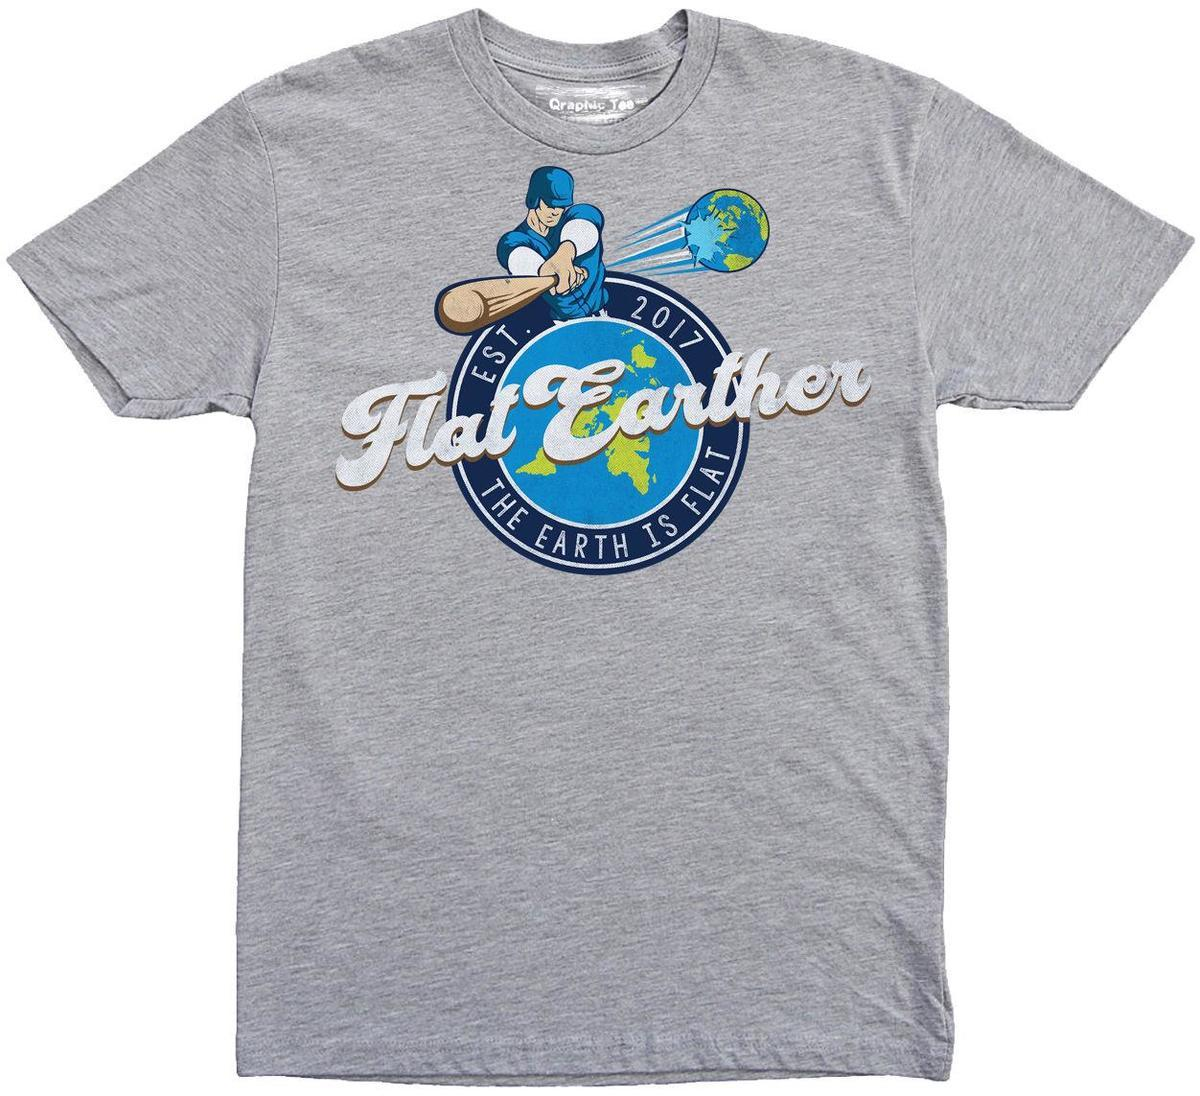 0ace2d7e Flat Earther T Shirt, Baseball, Earth Is Flat T Shirt, Flat Earth T Shirt,  NASA Business Tee Shirts Printing Coolest T Shirts Online From Amesion2507,  ...